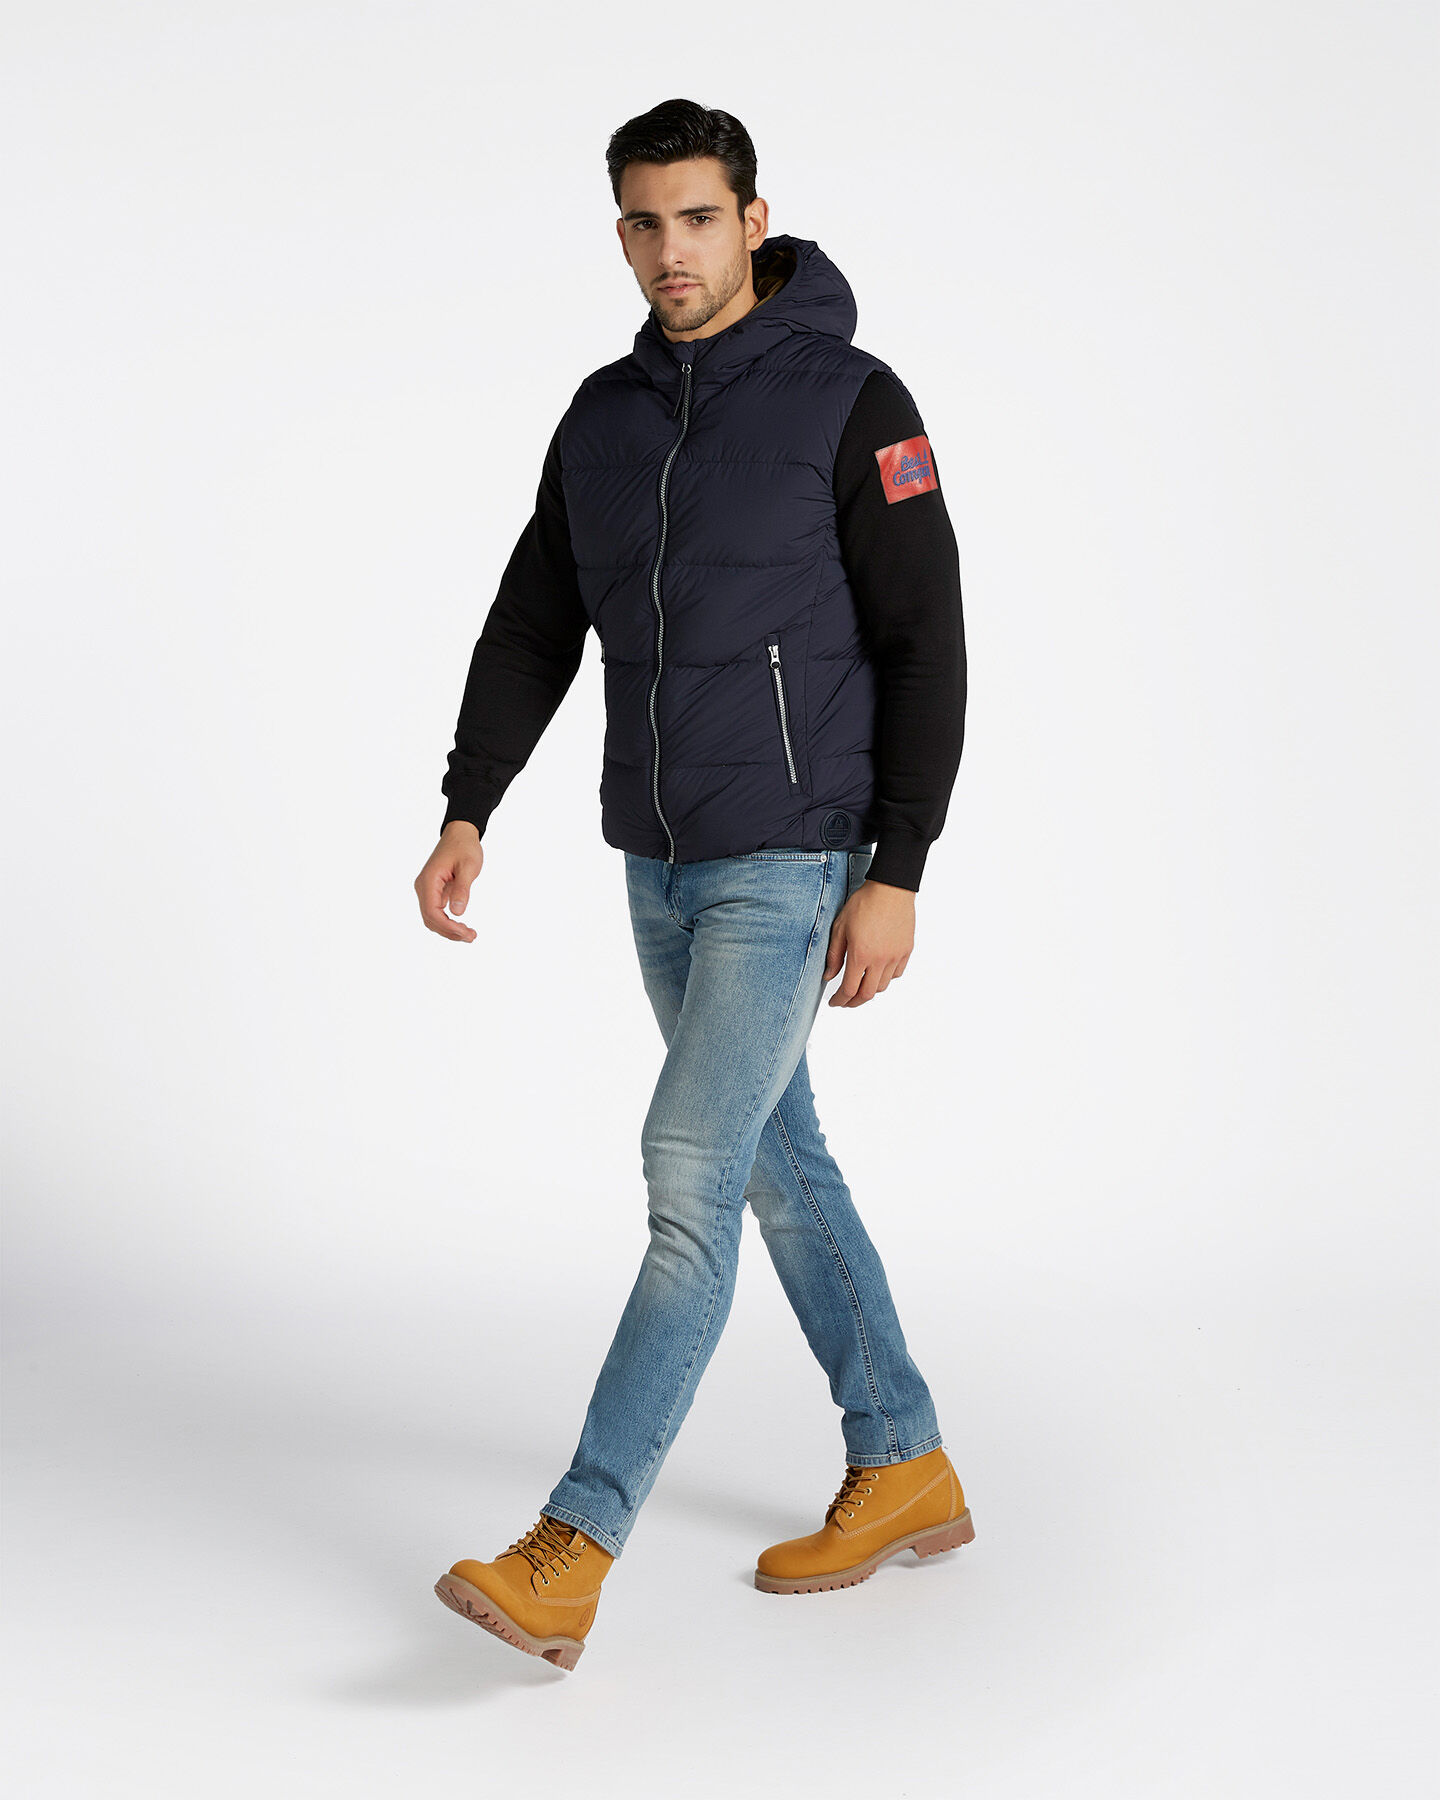 Gilet BEST COMPANY HOODIE M S4069322 scatto 3